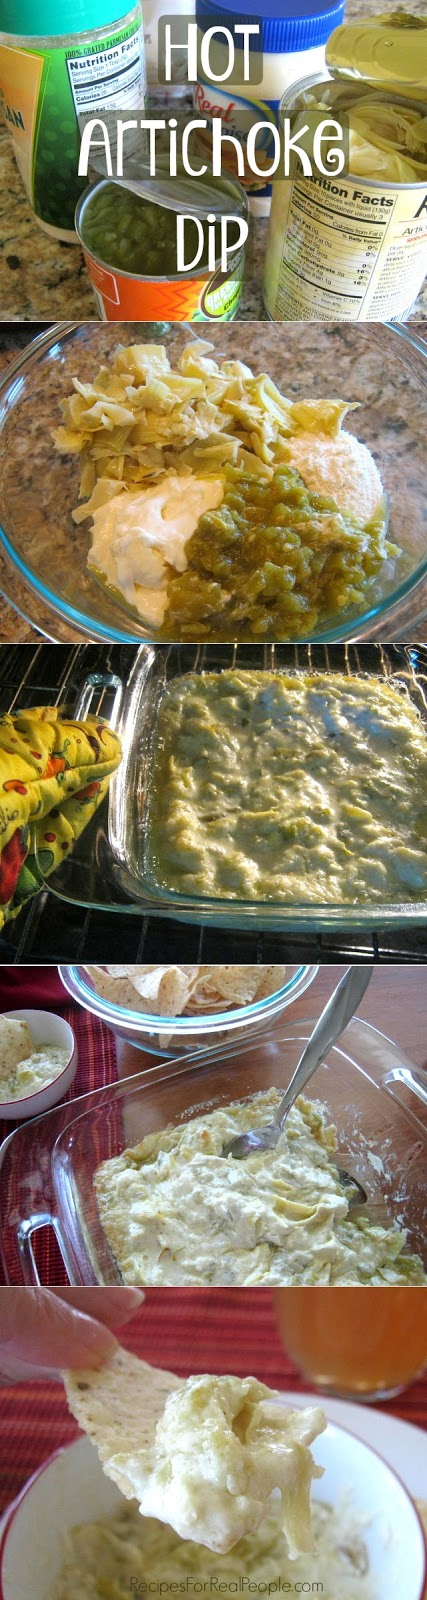 Hot Artichoke Dip recipe with step-by-step pictures.